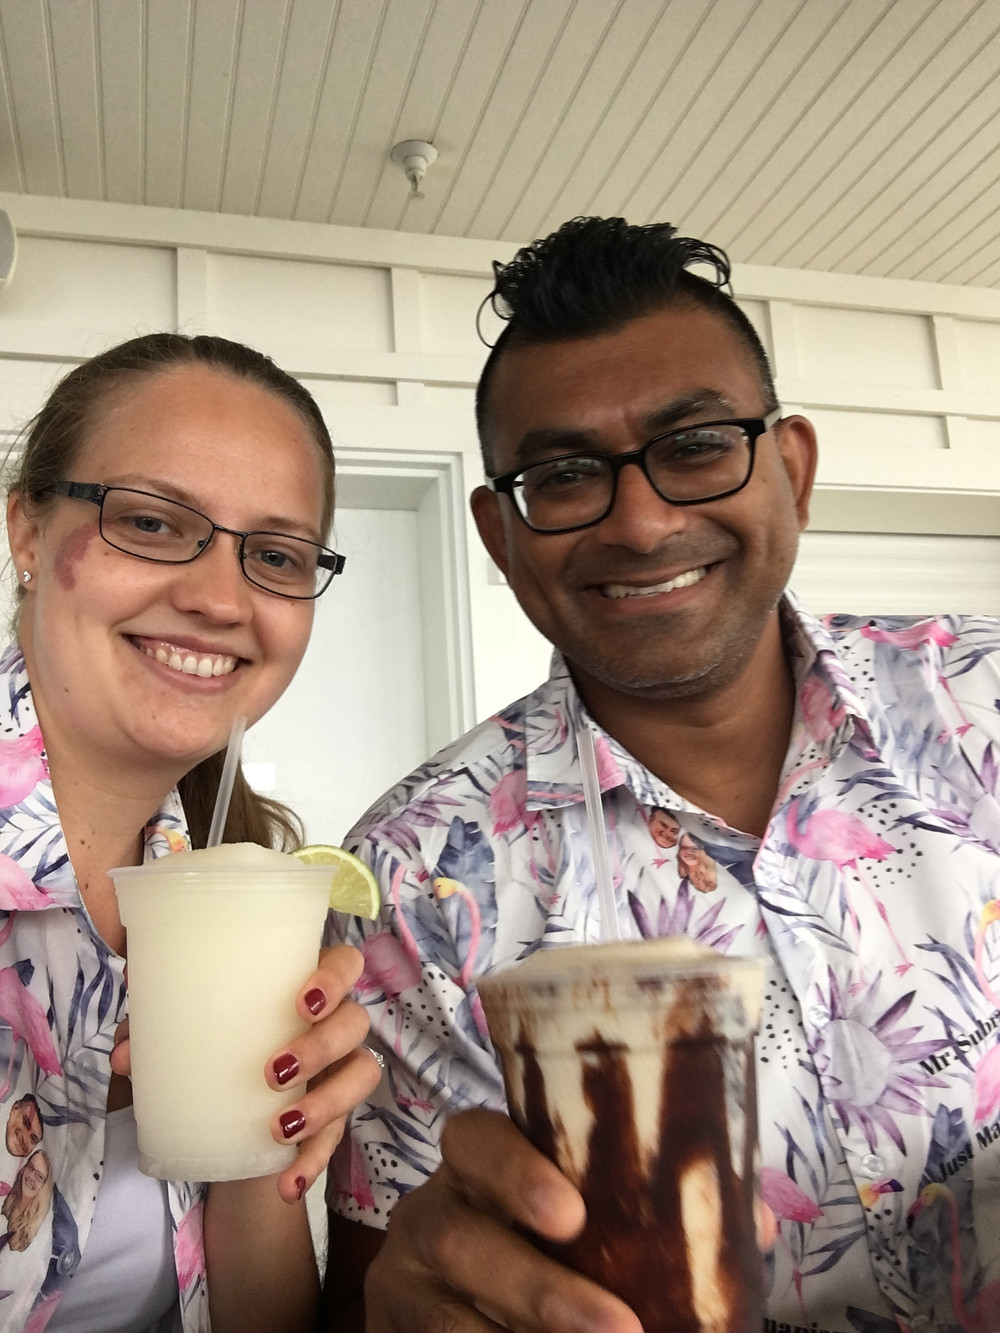 Newlyweds Danielle and Sam toast with frozen drinks at their mini-moon while wearing Sam's favorite Hawaiian shirts, gifted to him by his wife at their wedding.